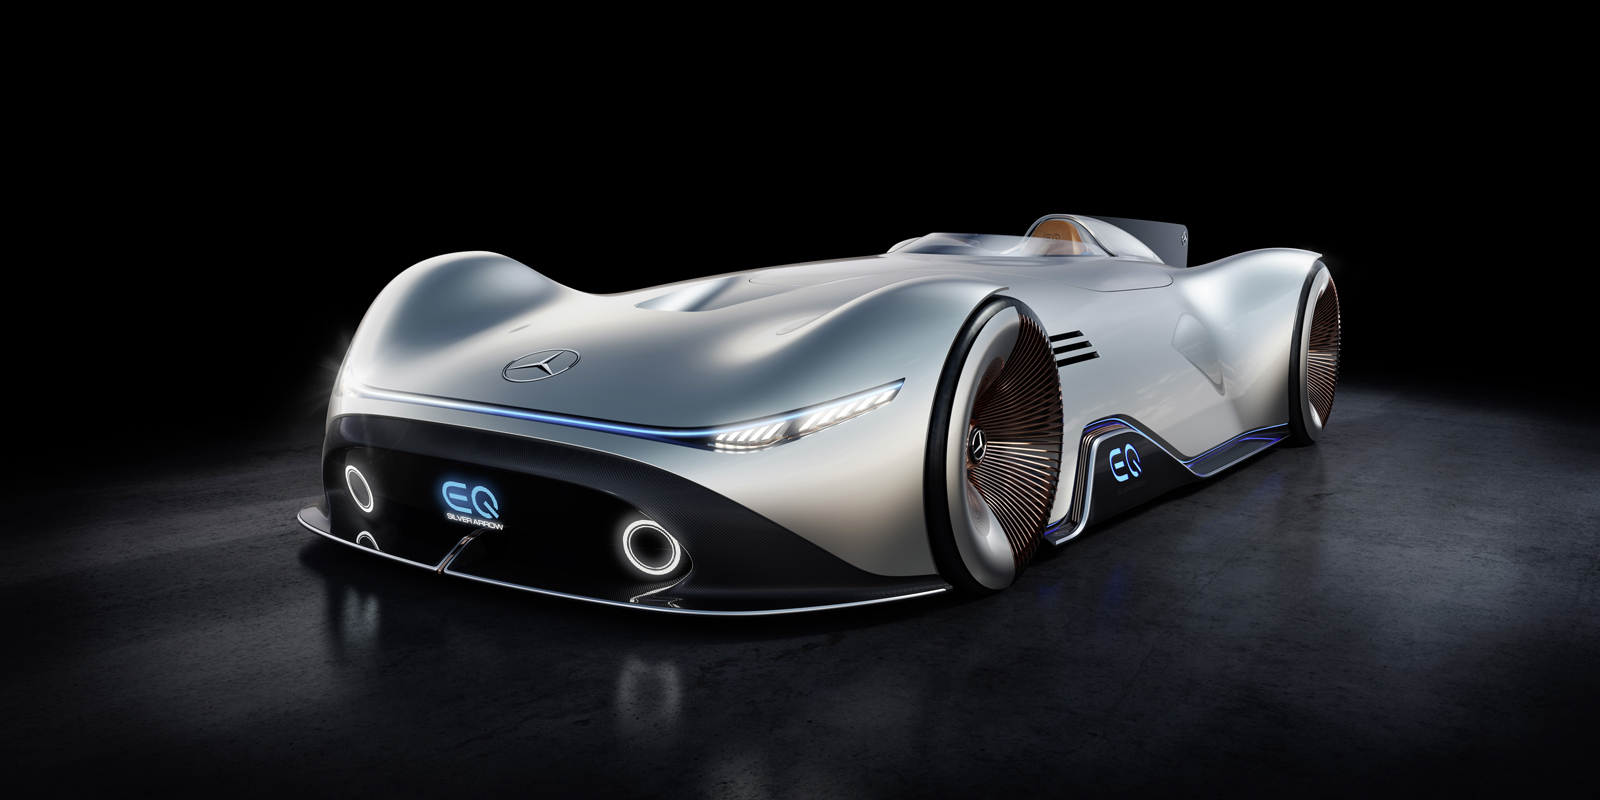 Mercedes Benz Eq Silver Arrow Has 738 Hp And Is 17 Feet Long